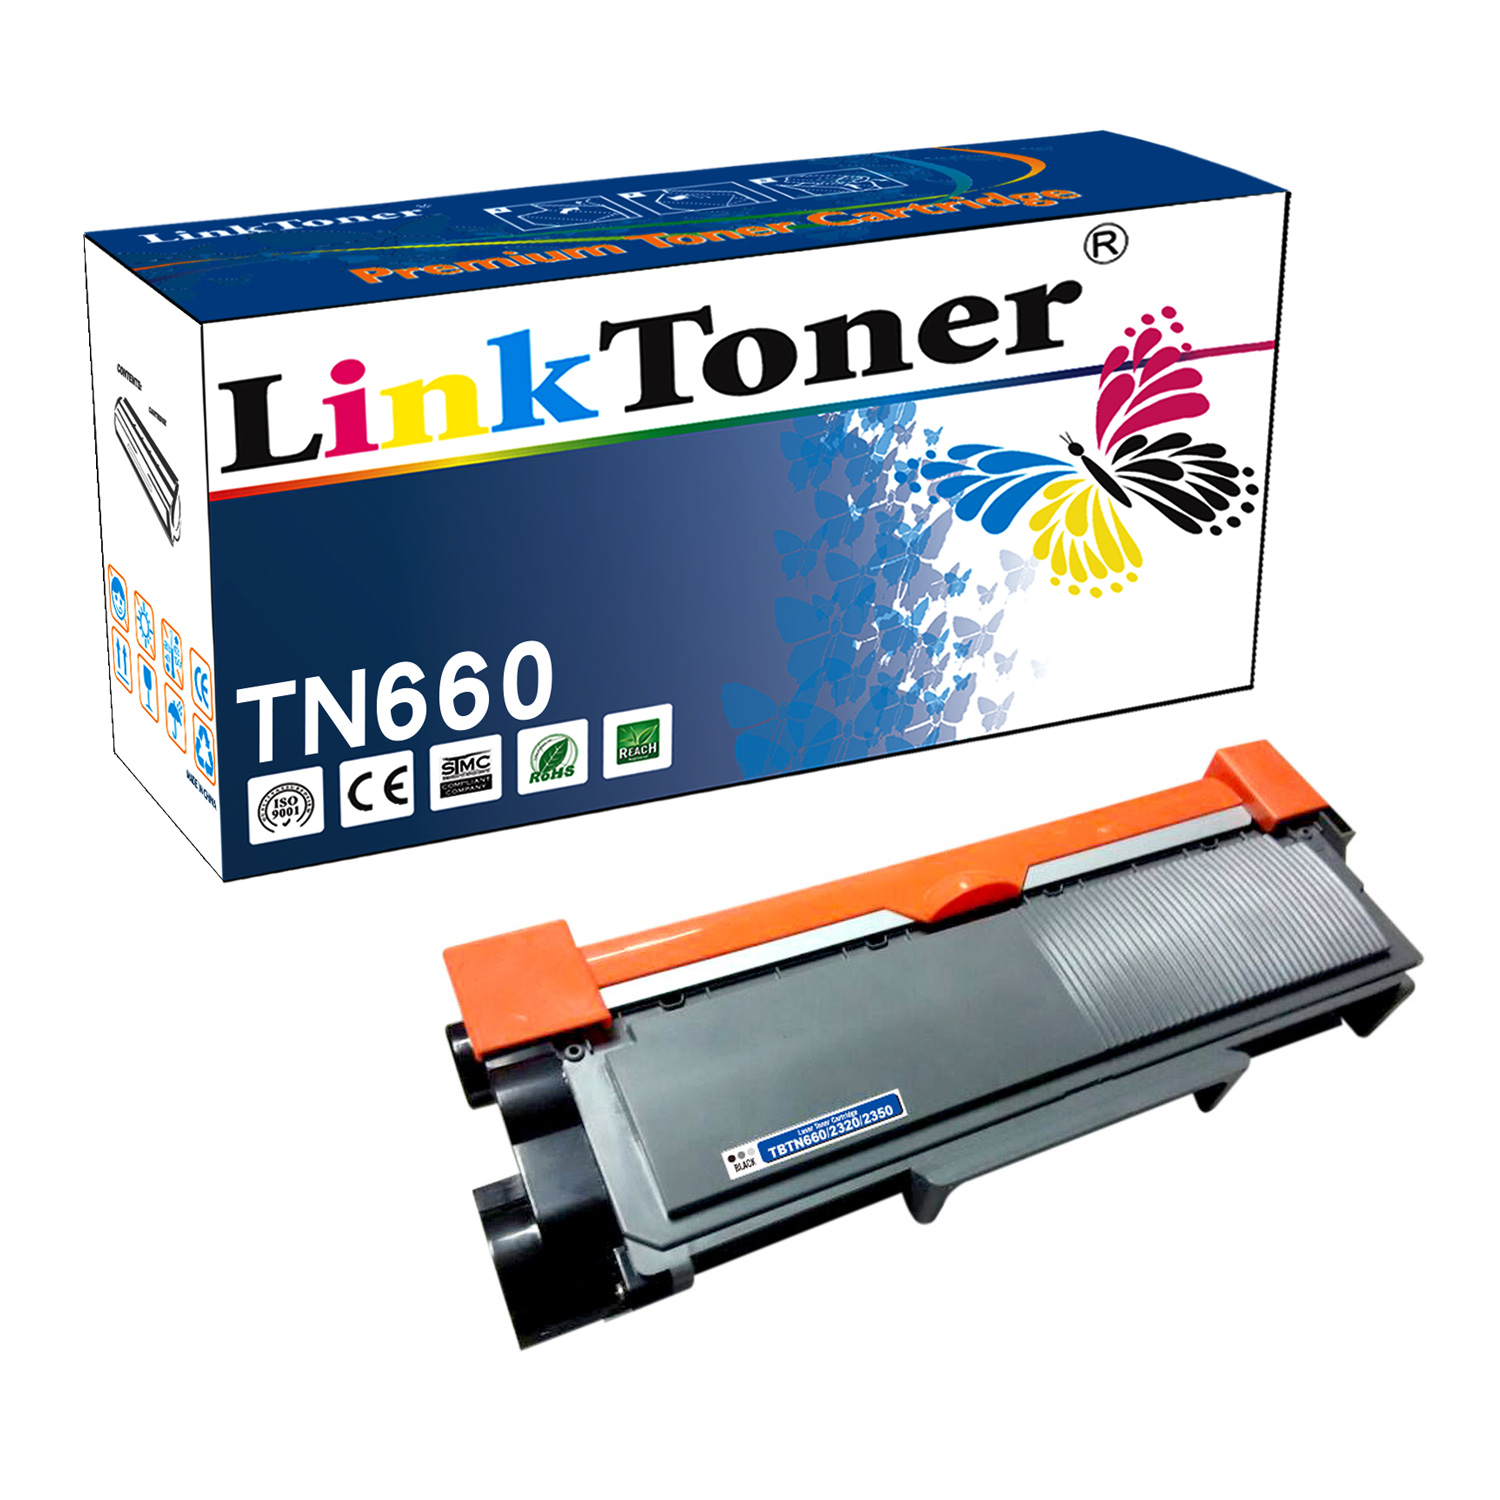 LinkToner Compatible Toner Cartridge Replacement for Brother TN660 BK Laser Printer DCP-L2520D,HL-L2305W, HL-L2315DW